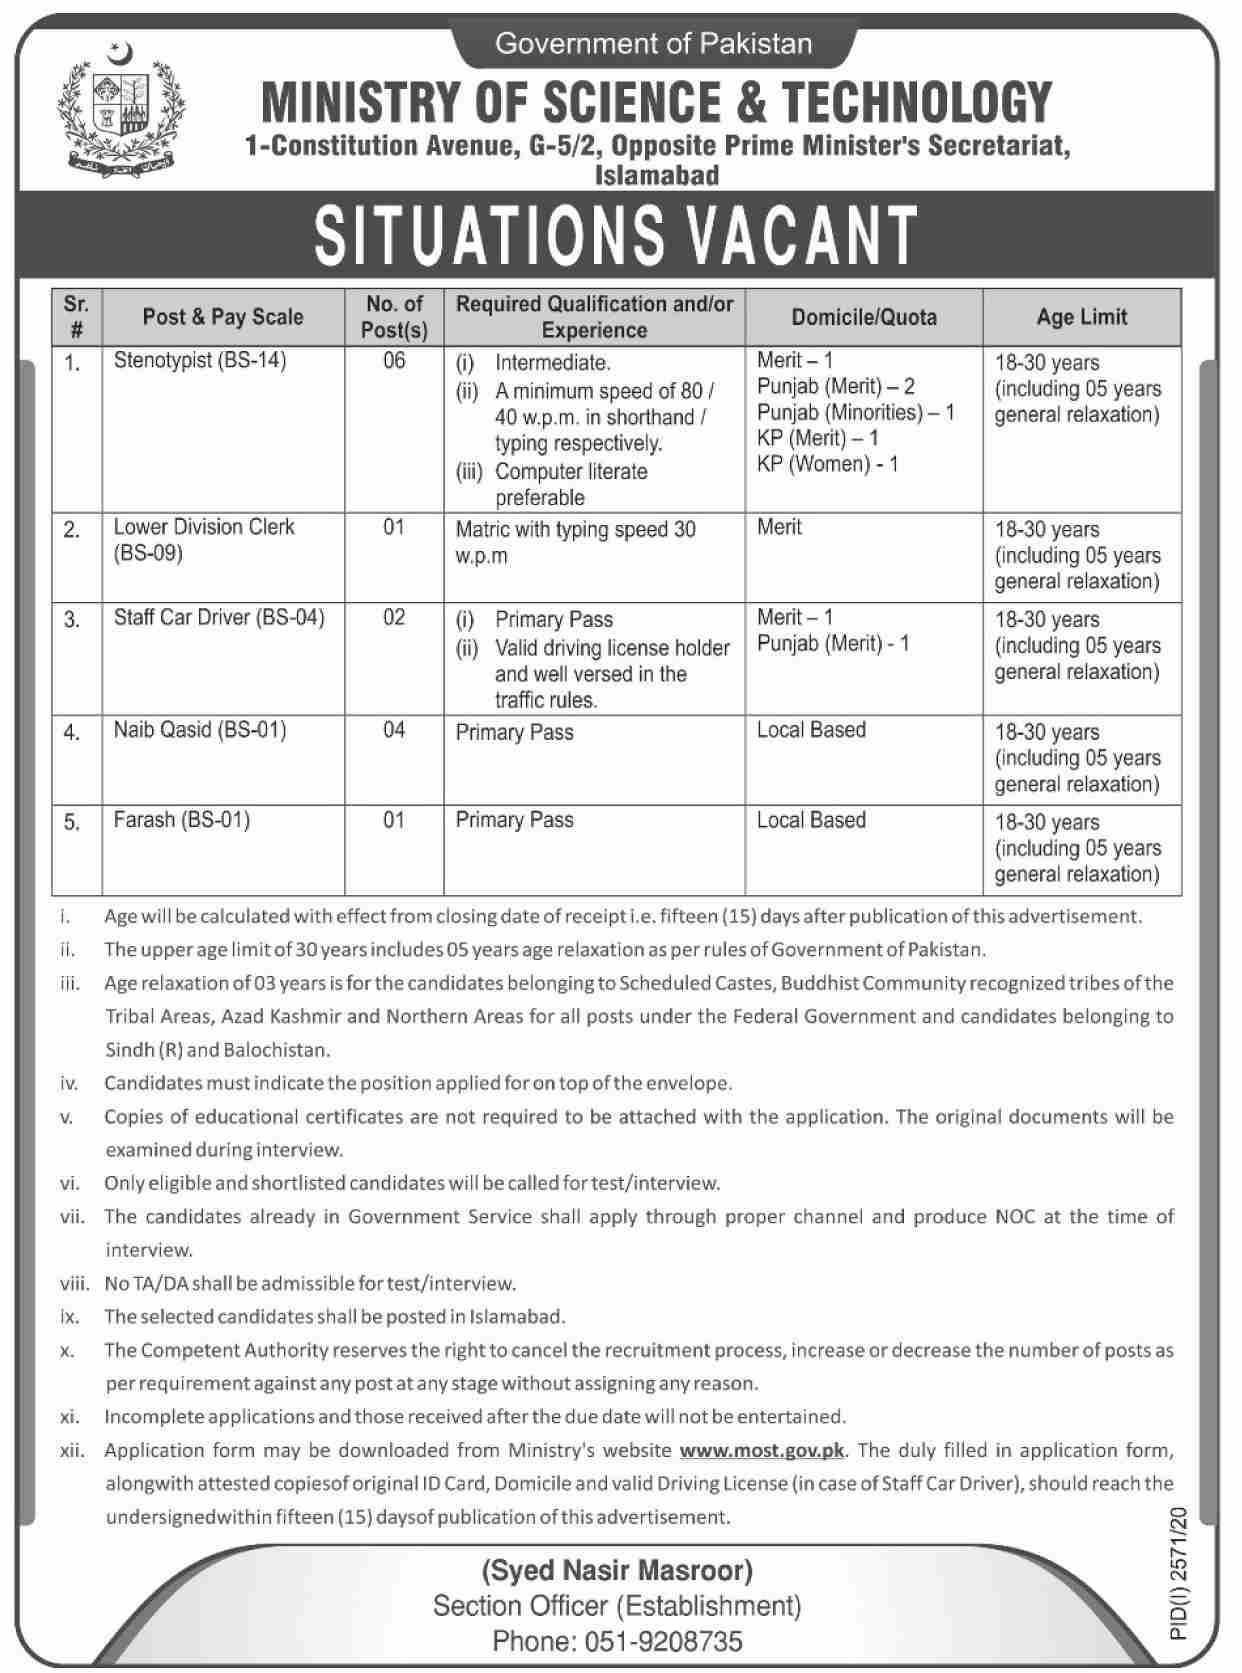 Ministry of Science & Technology Jobs November 2020